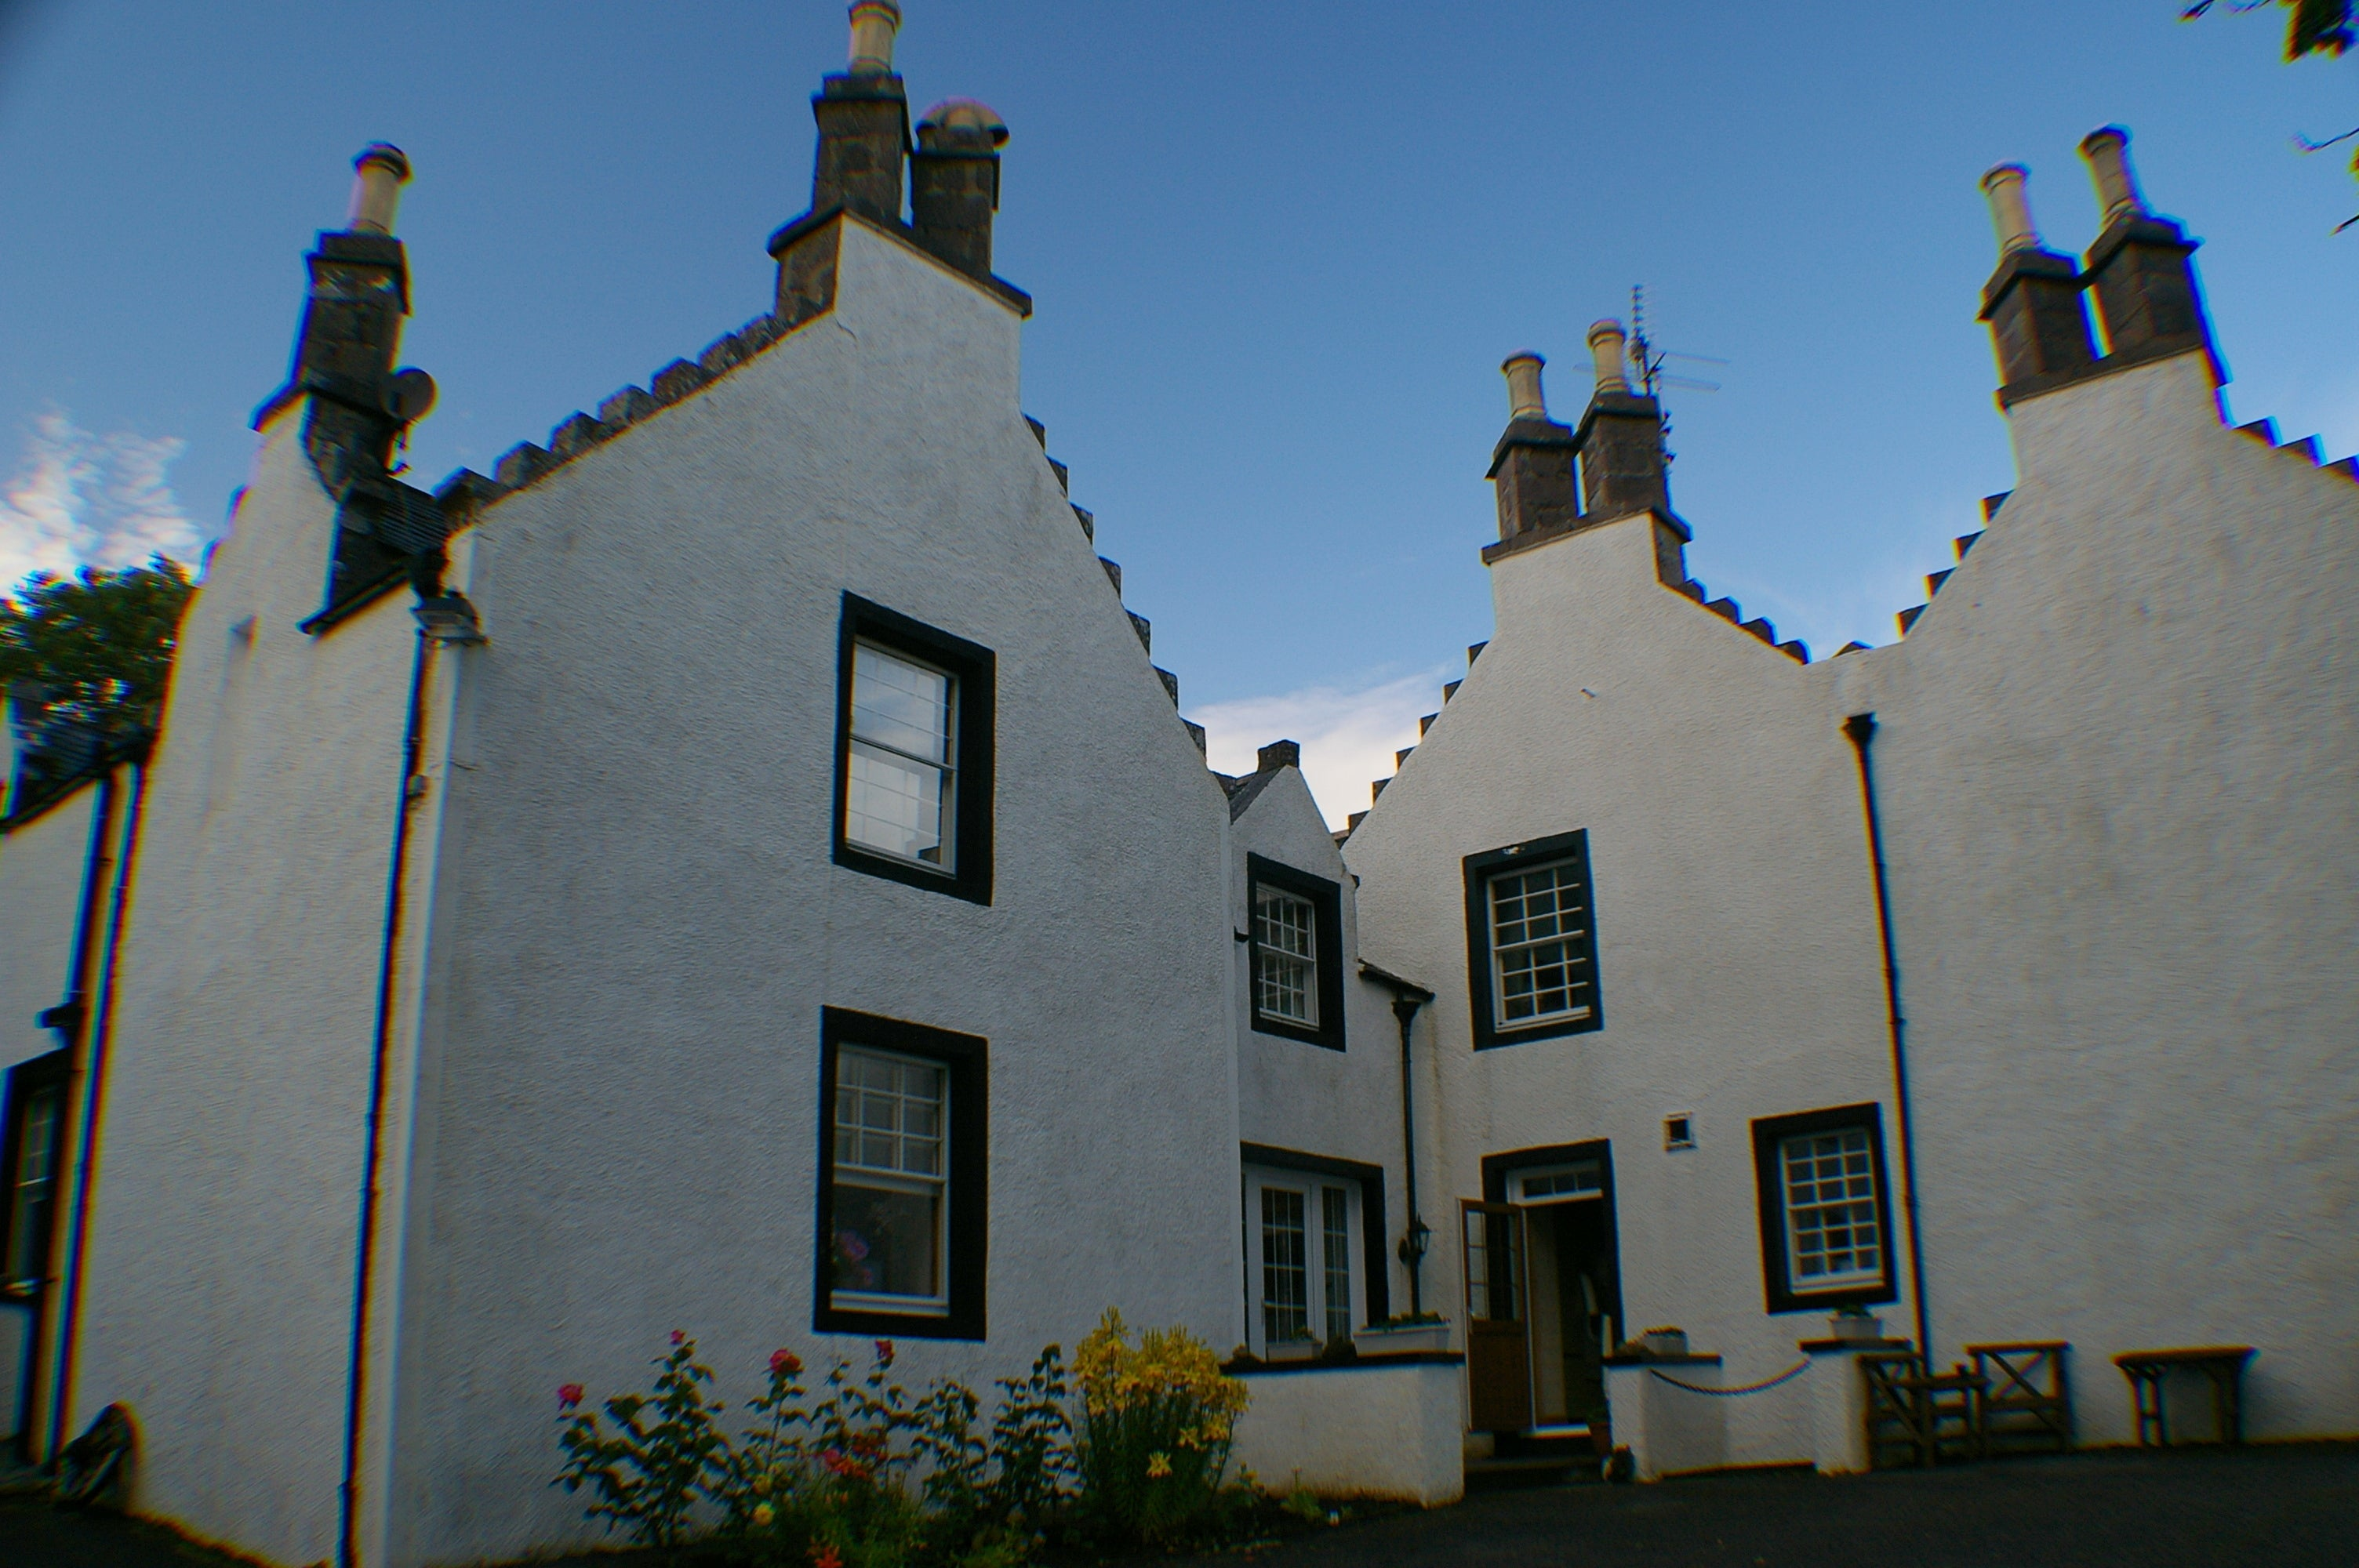 Blanco en Bed and Breakfast Scourie Lodge and Gardens